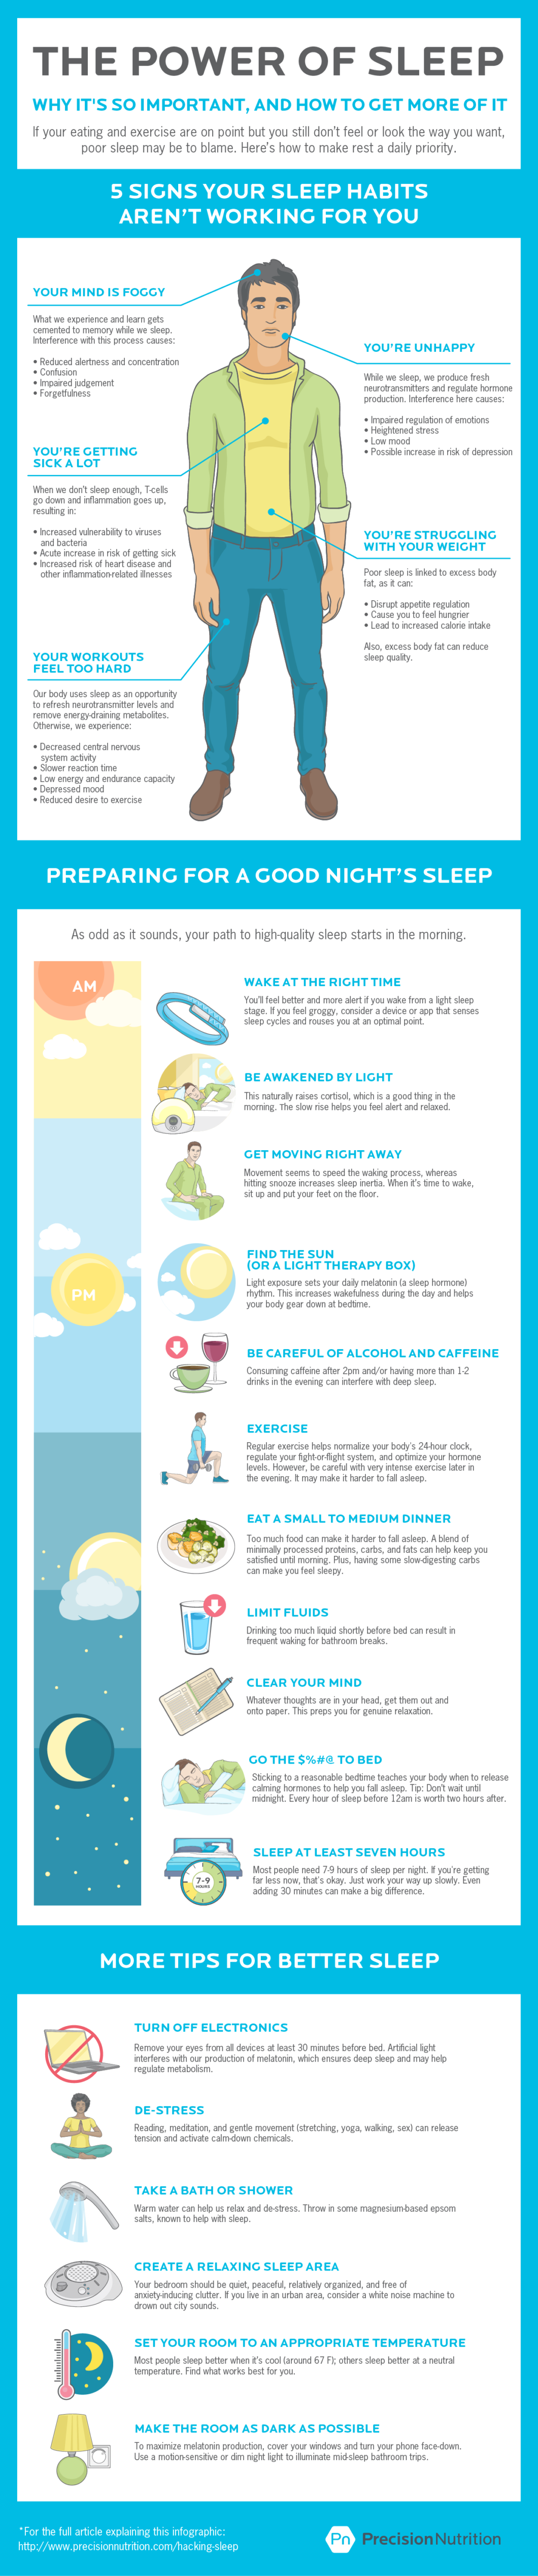 PN sleep infographic